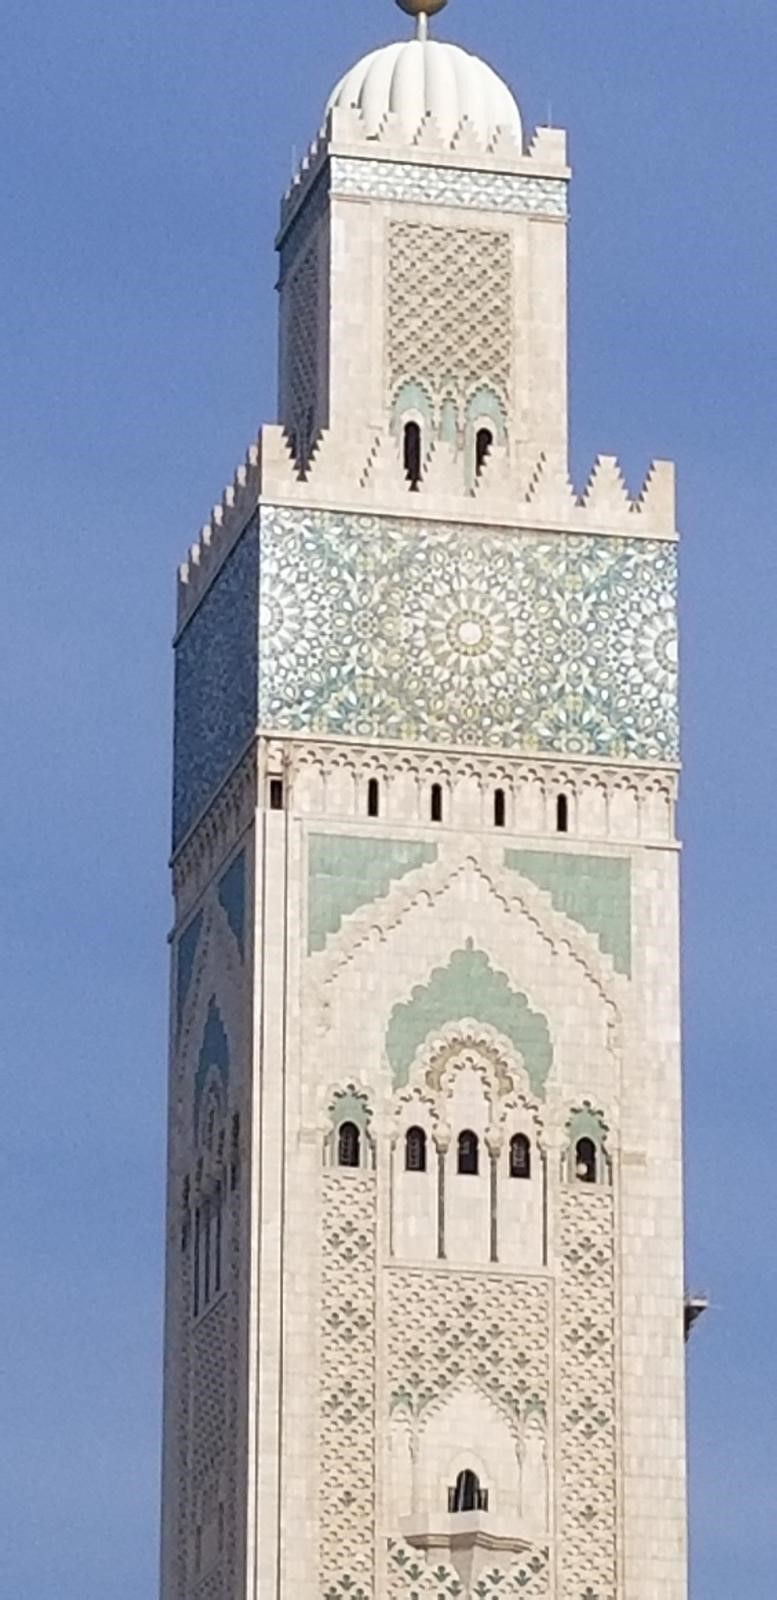 Moroccan mosque.